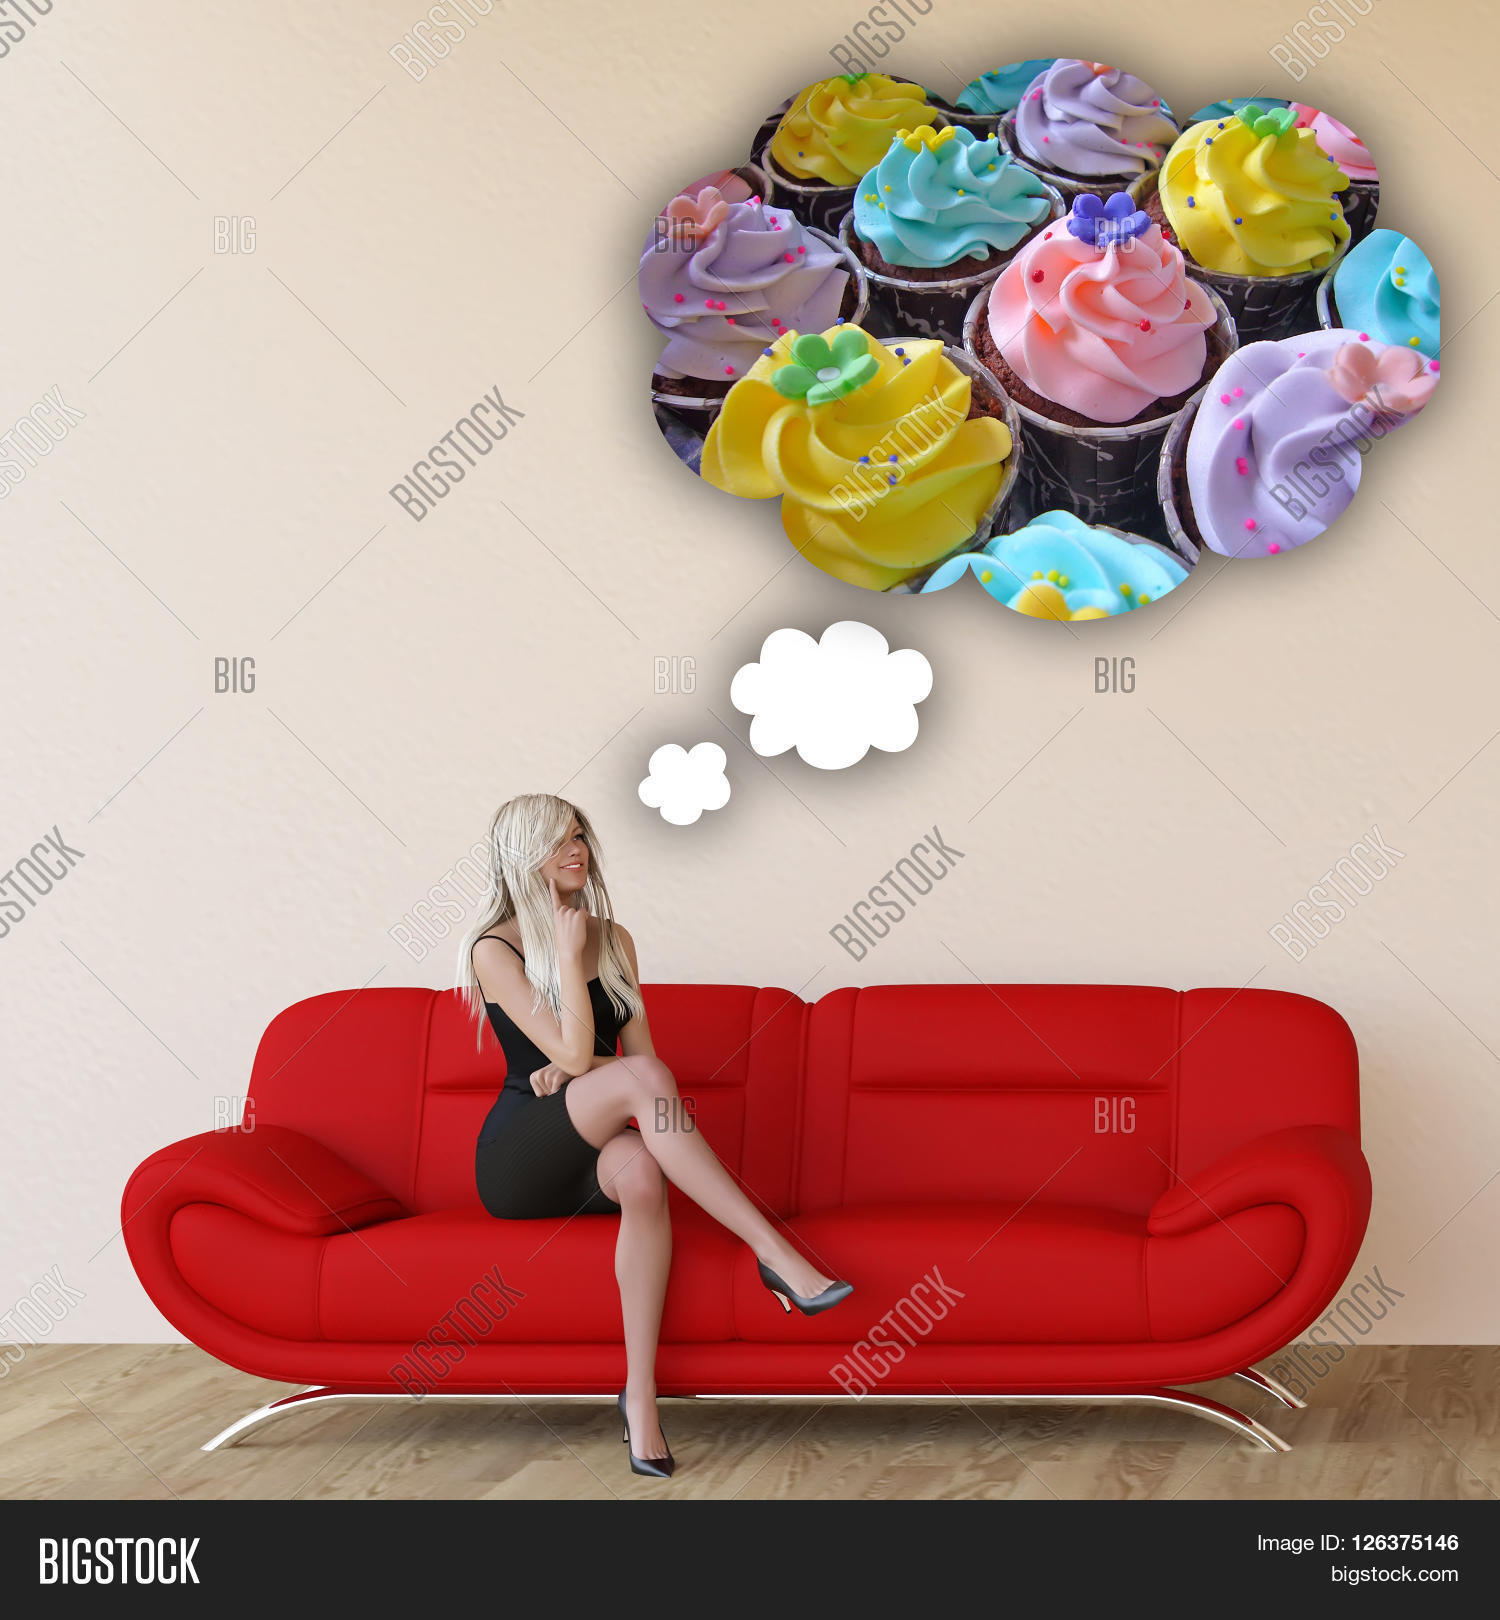 Woman Craving Cupcakes Image Photo Free Trial Bigstock